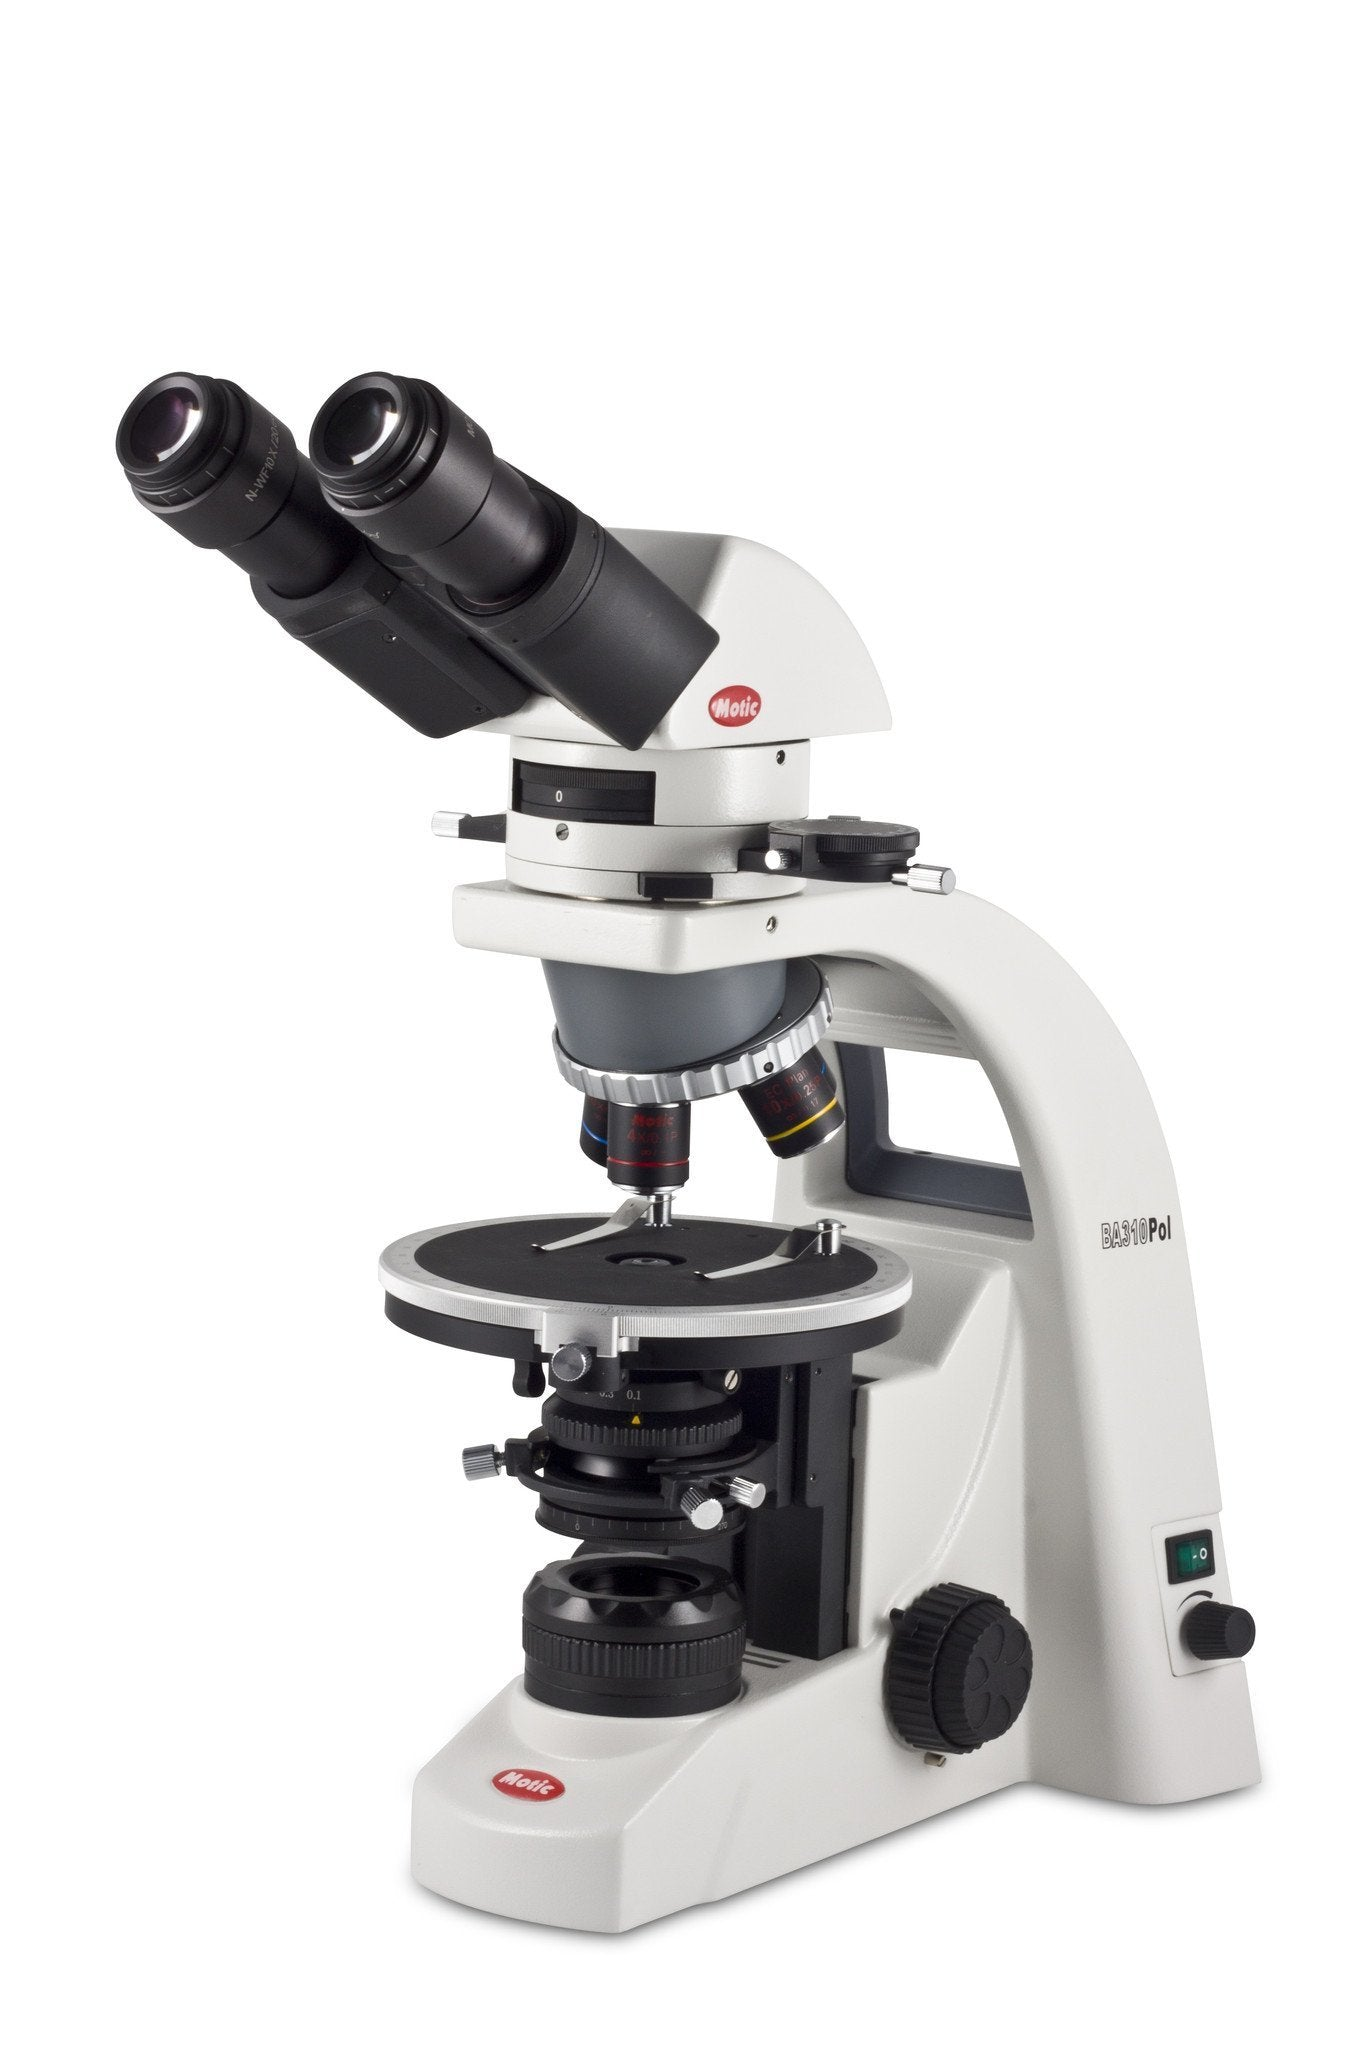 Motic BA310 POL Polarizing Light Microscope